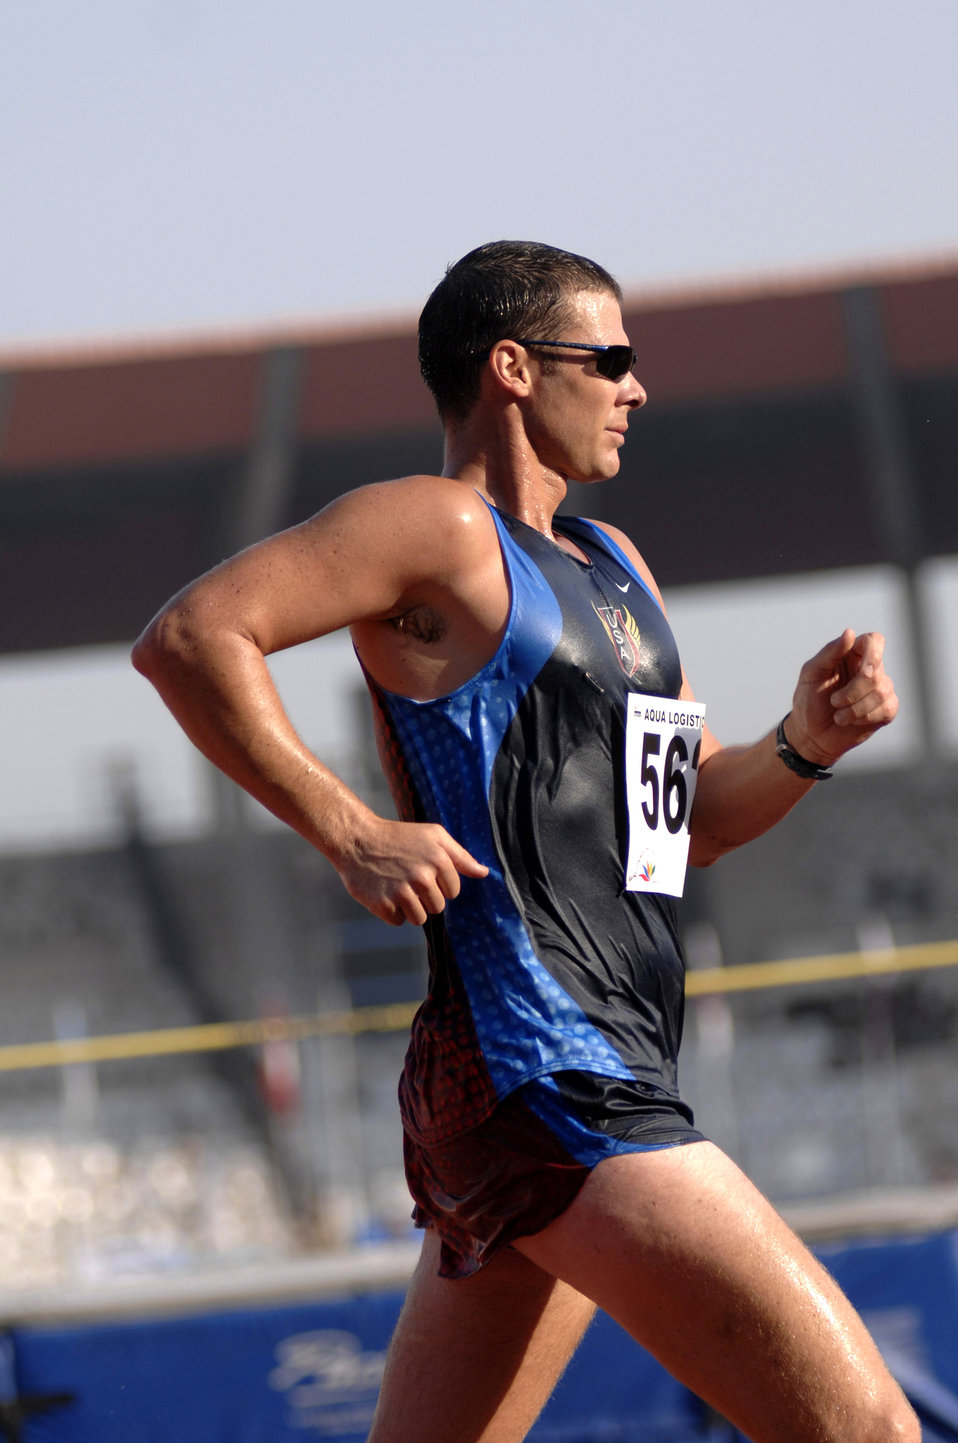 Americans compete in Military World Games